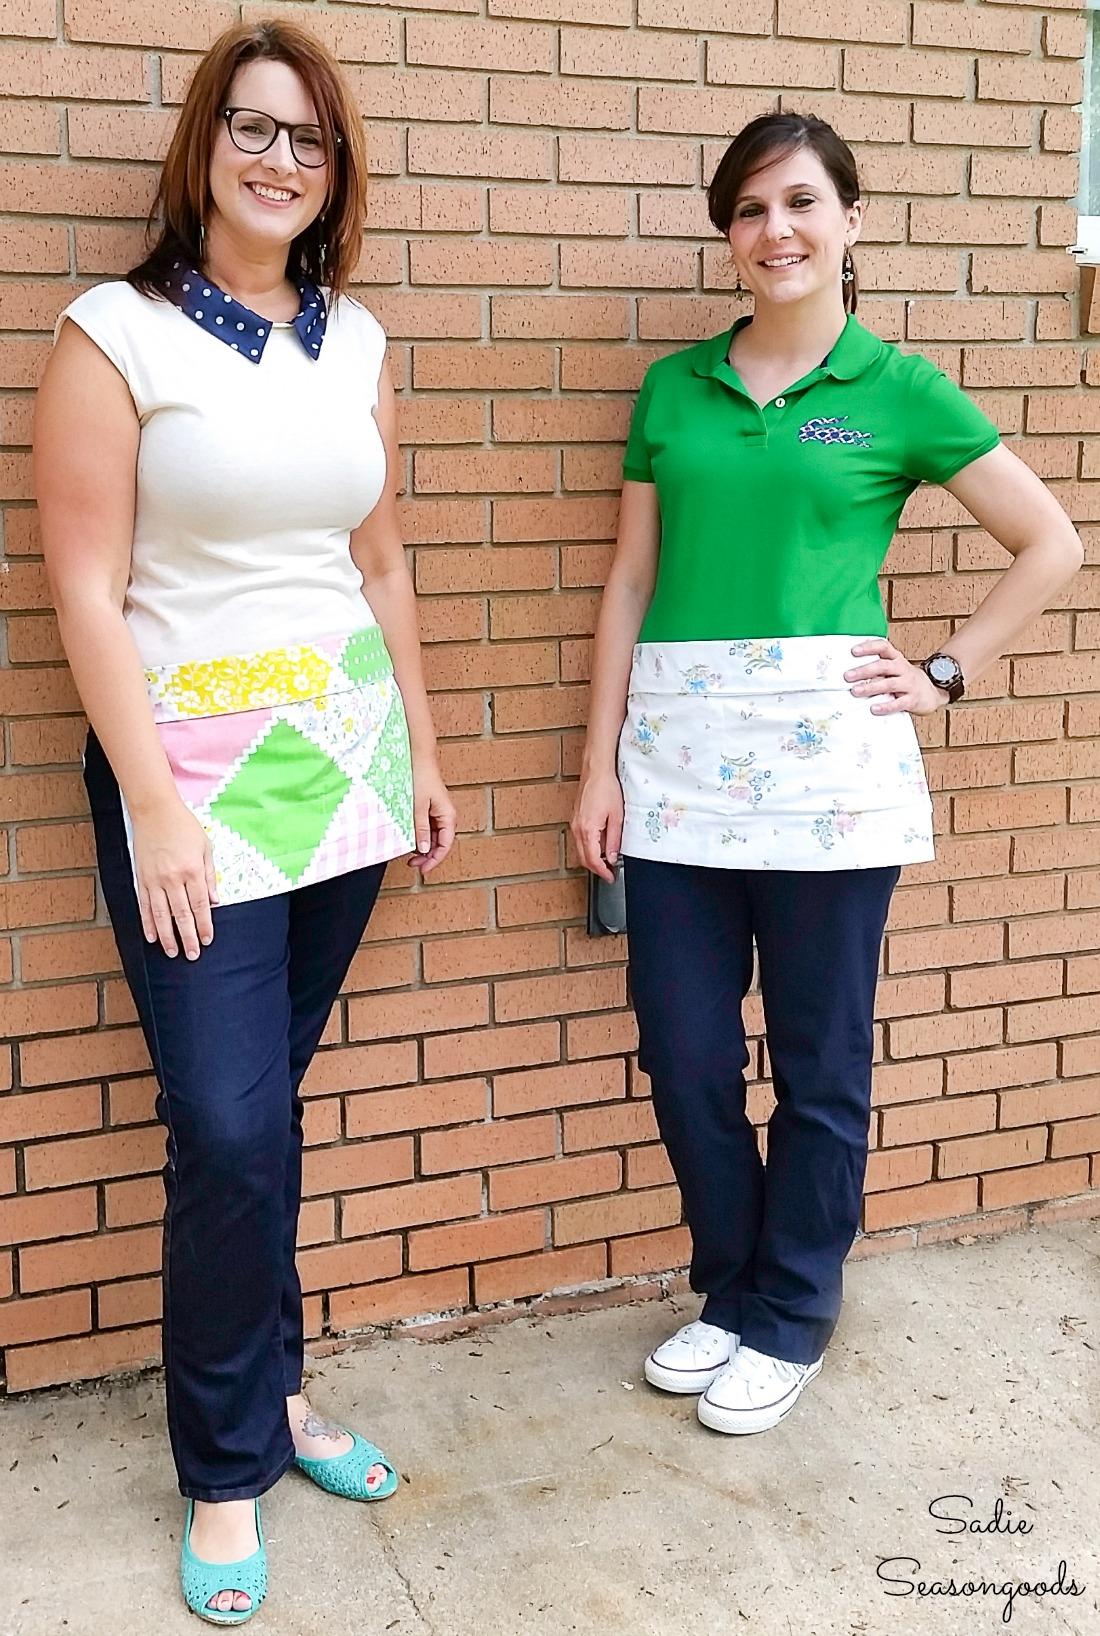 Vintage pillowcases as server aprons or waist aprons